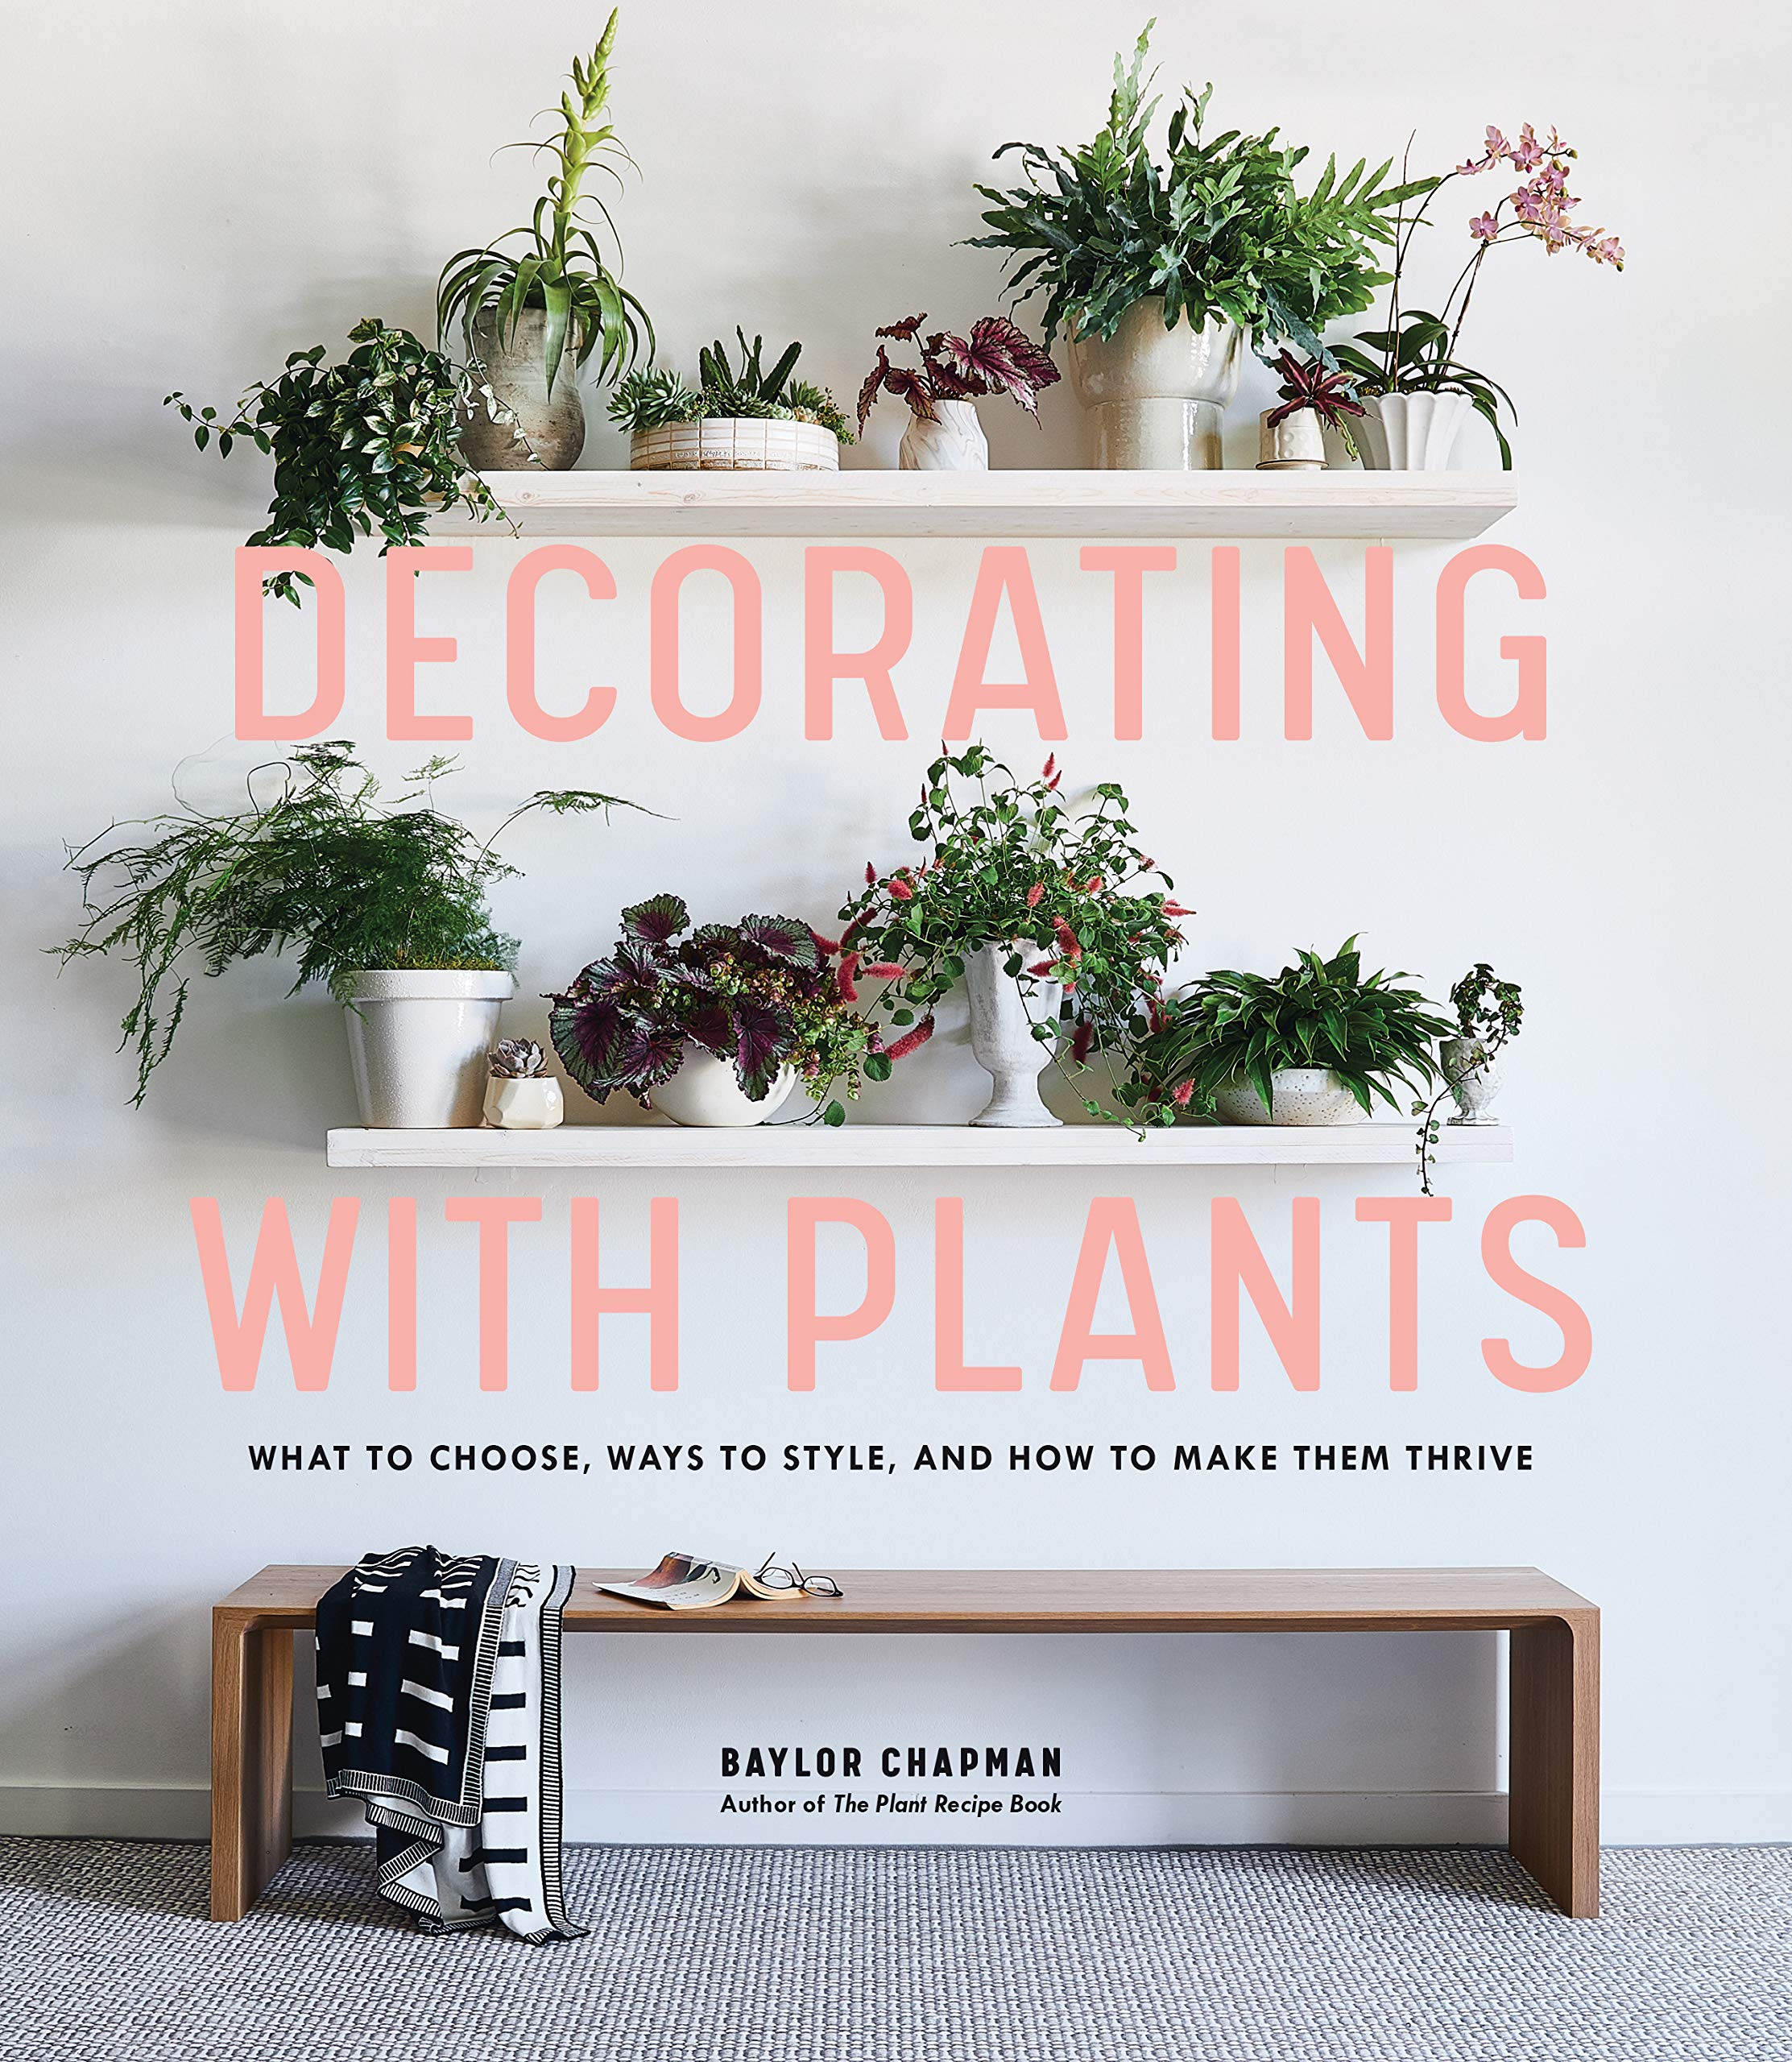 Pleasing Decorating With Plants What To Choose Ways To Style And Download Free Architecture Designs Scobabritishbridgeorg